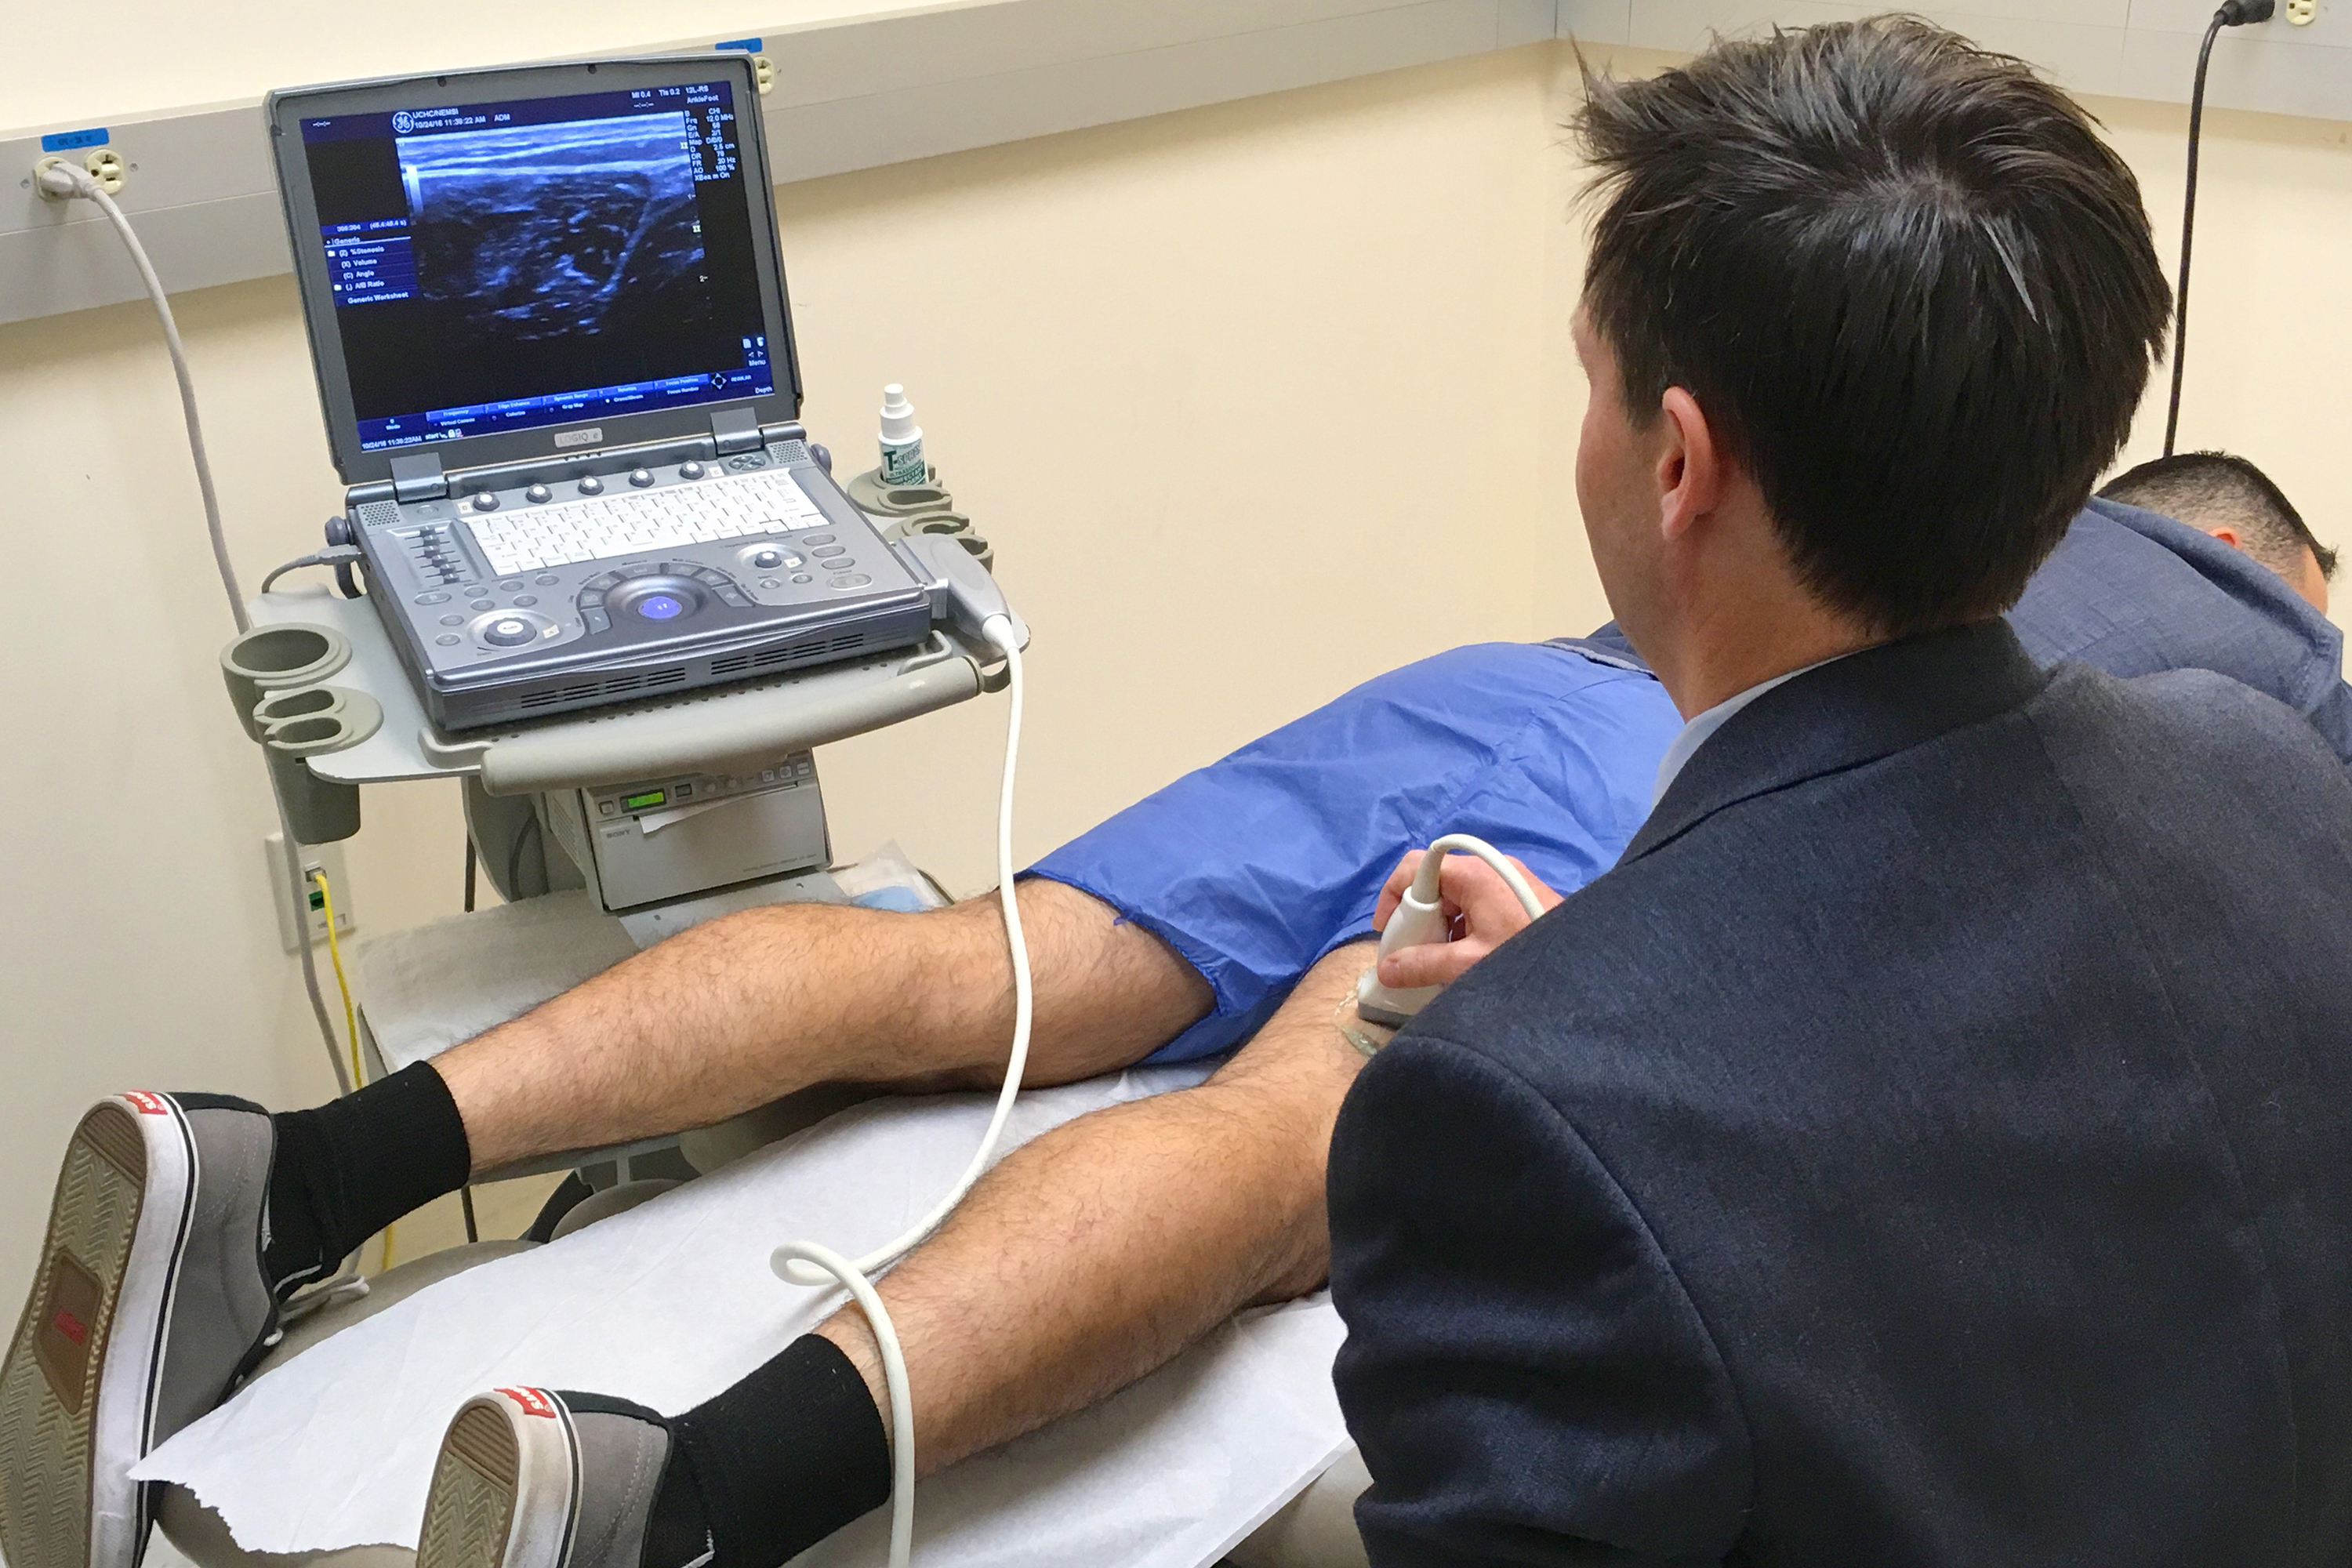 ultrasound physical medical treatment essay Utilizing ultrasound for our joplin patients is one way we do that  animal  ultrasound services here at  ultrasounds are great for diagnosing patients.